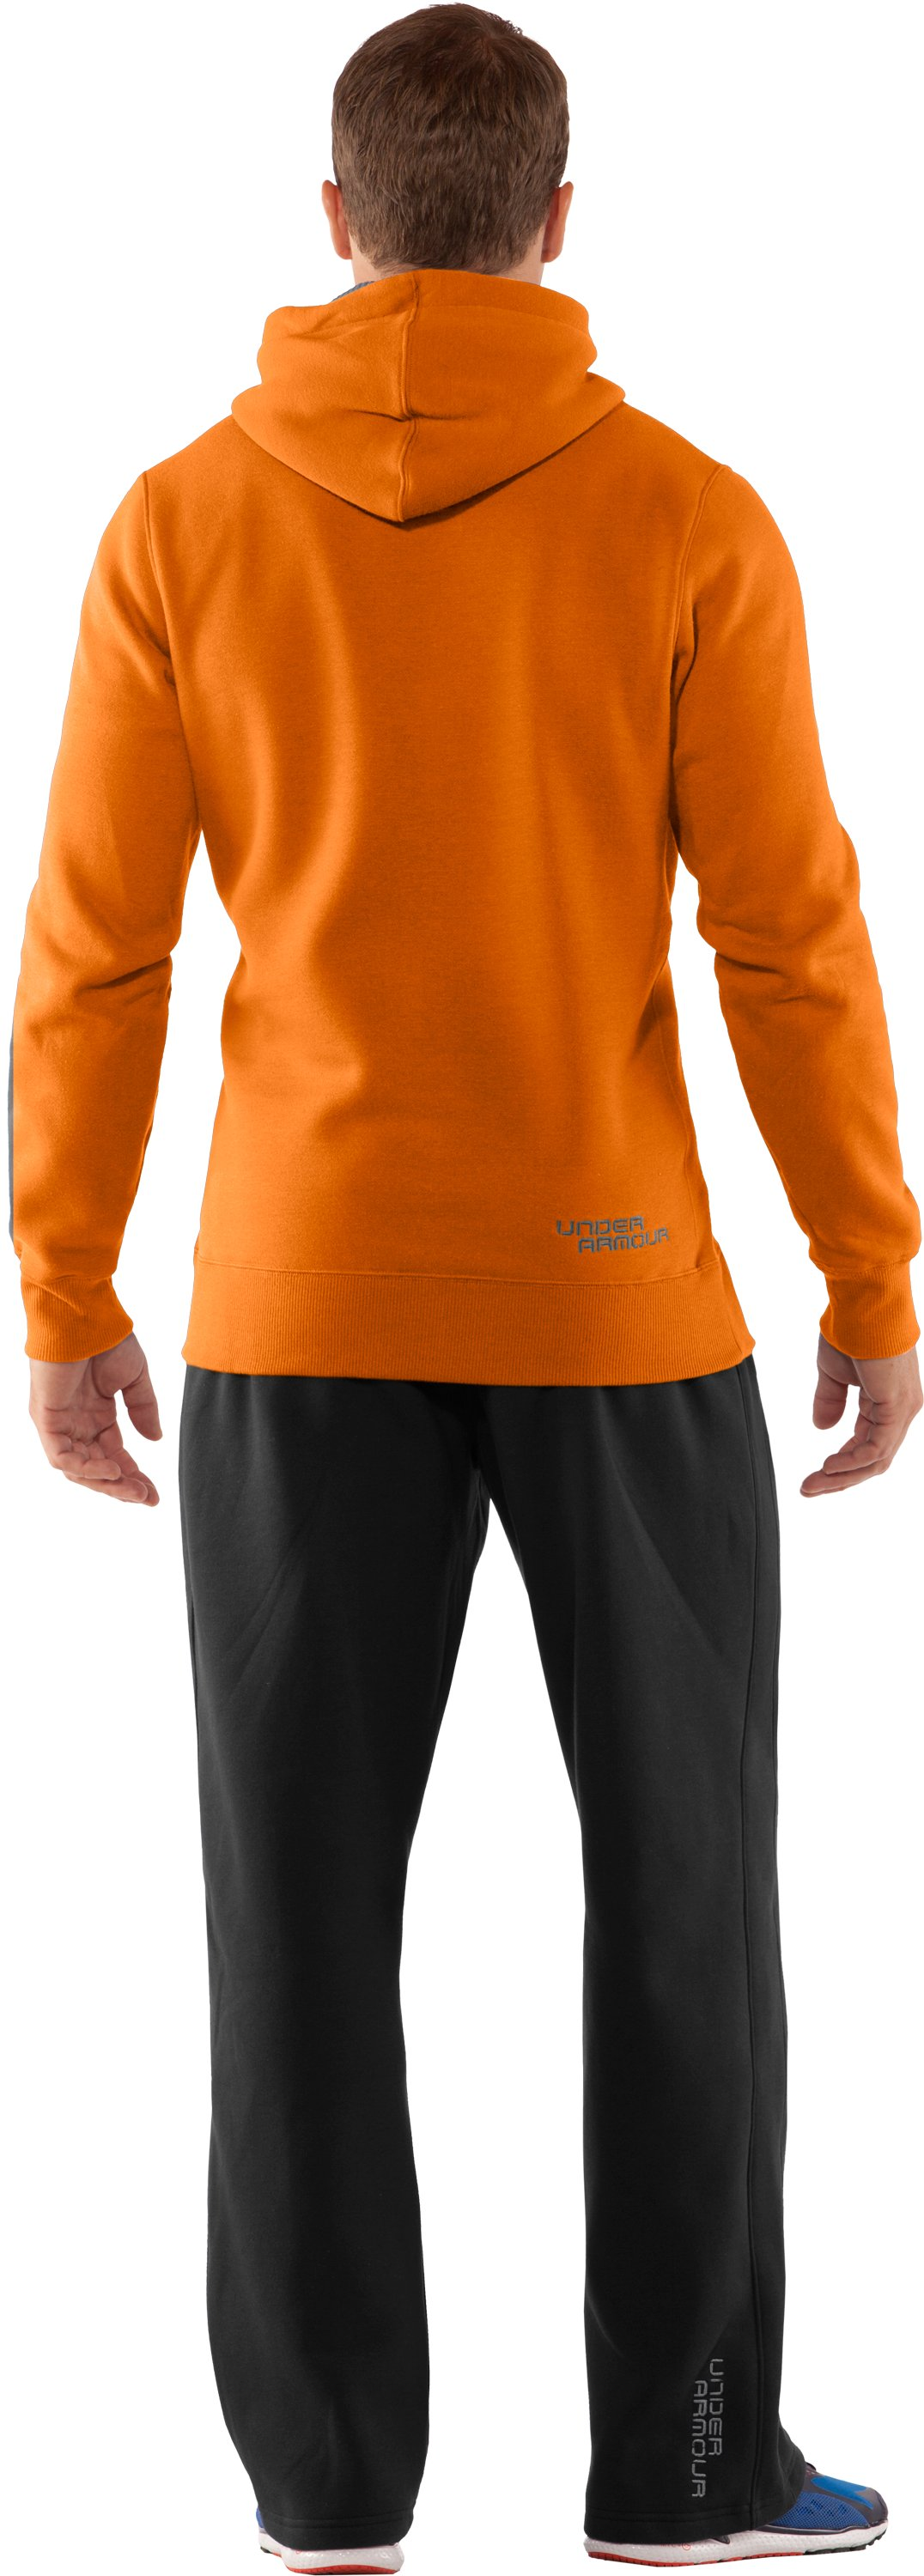 Men's Charged Cotton® Storm Pullover Hoodie, Radiate, Back